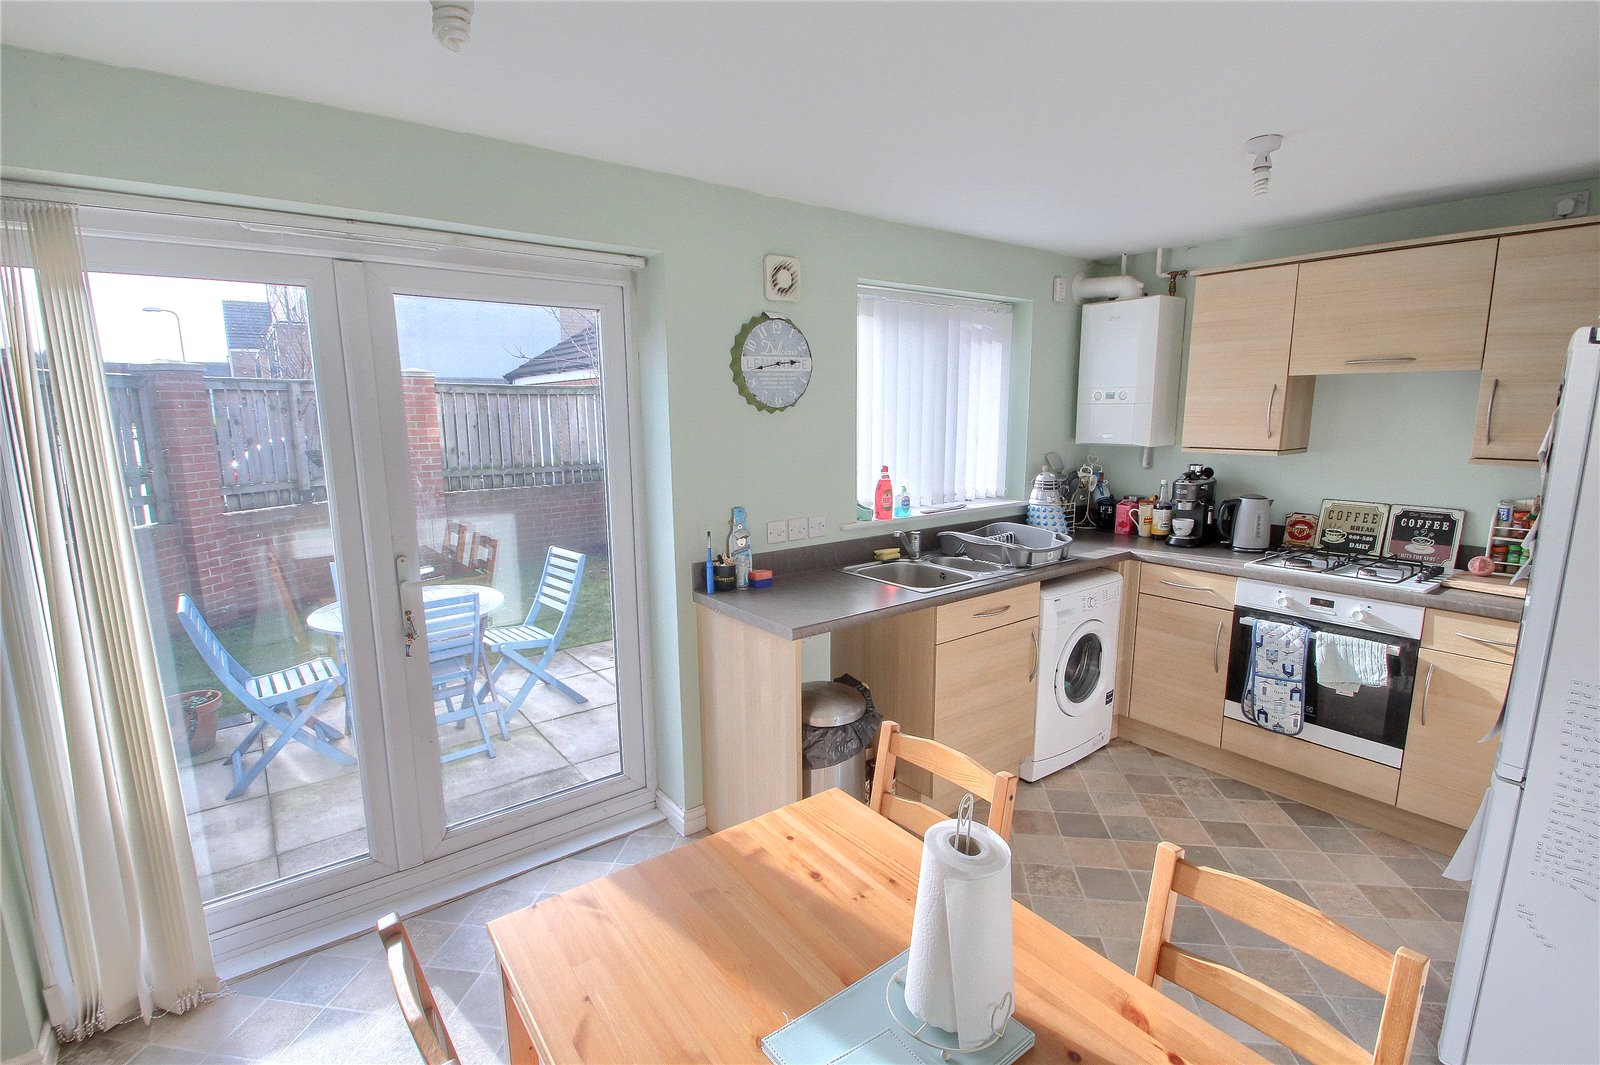 4 bed house for sale in Crimdon Beck Close, Whitewater Glade 2